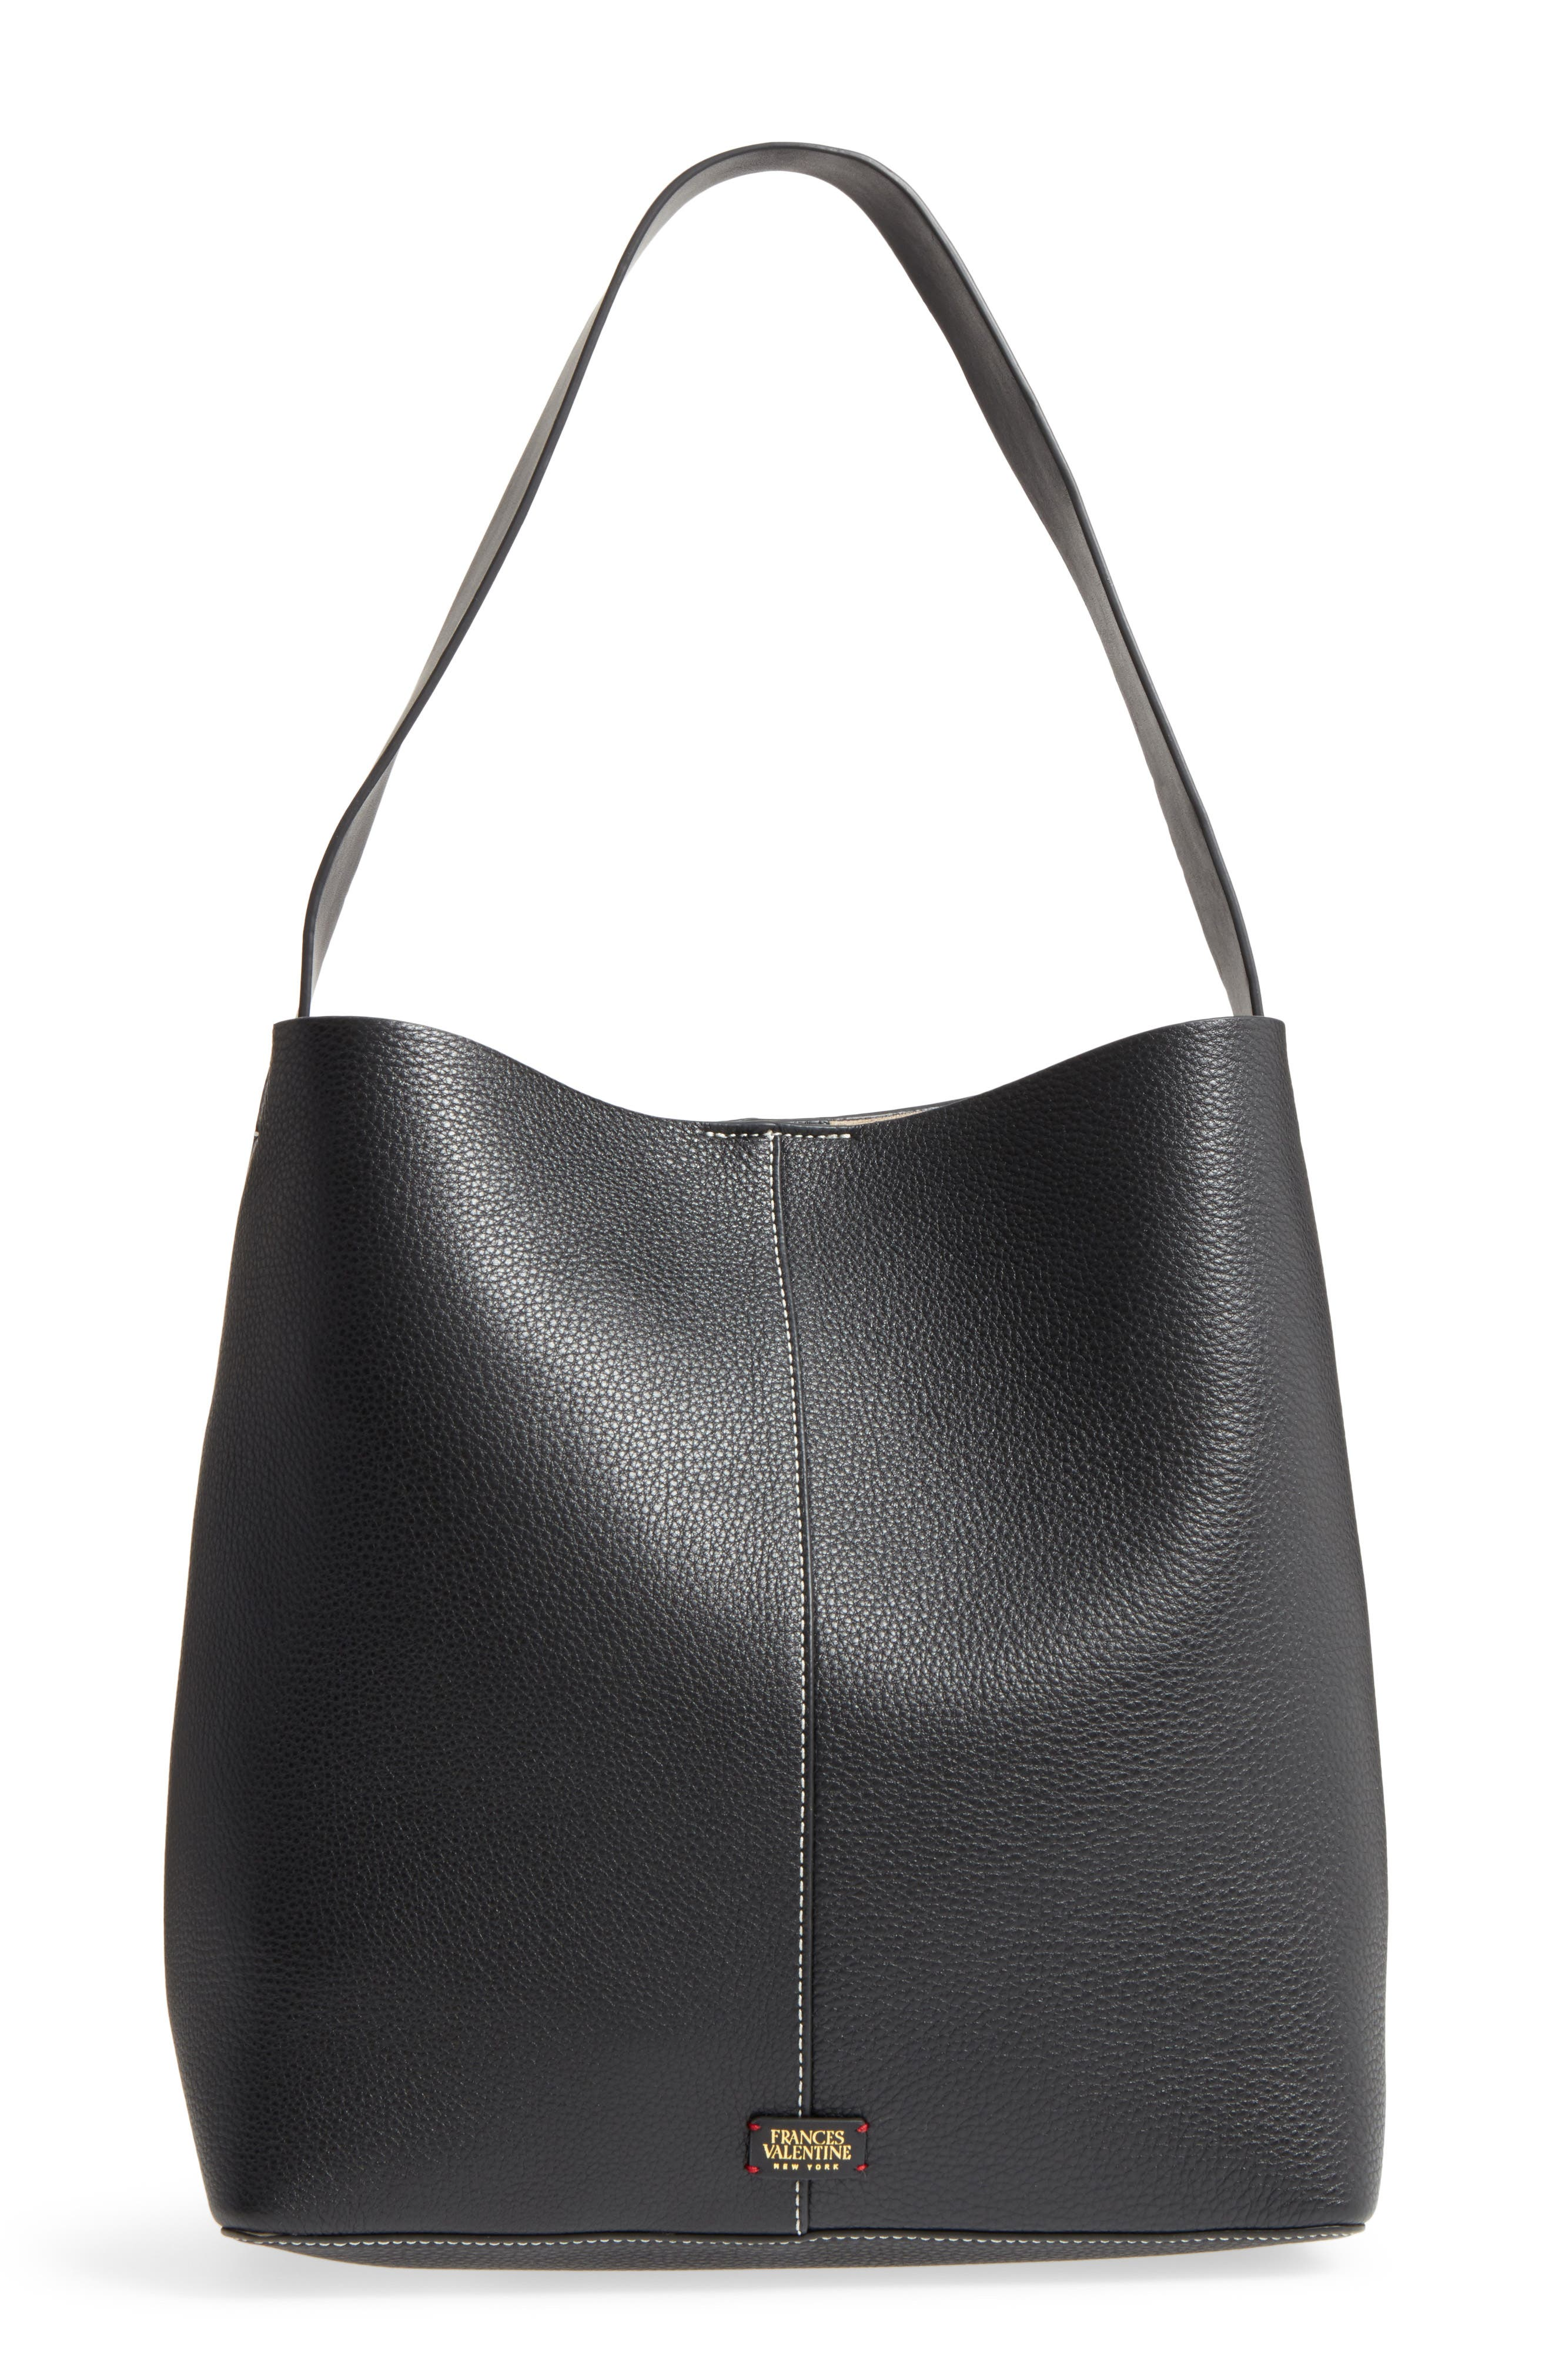 Large Leather Shoulder Bag,                             Main thumbnail 1, color,                             001